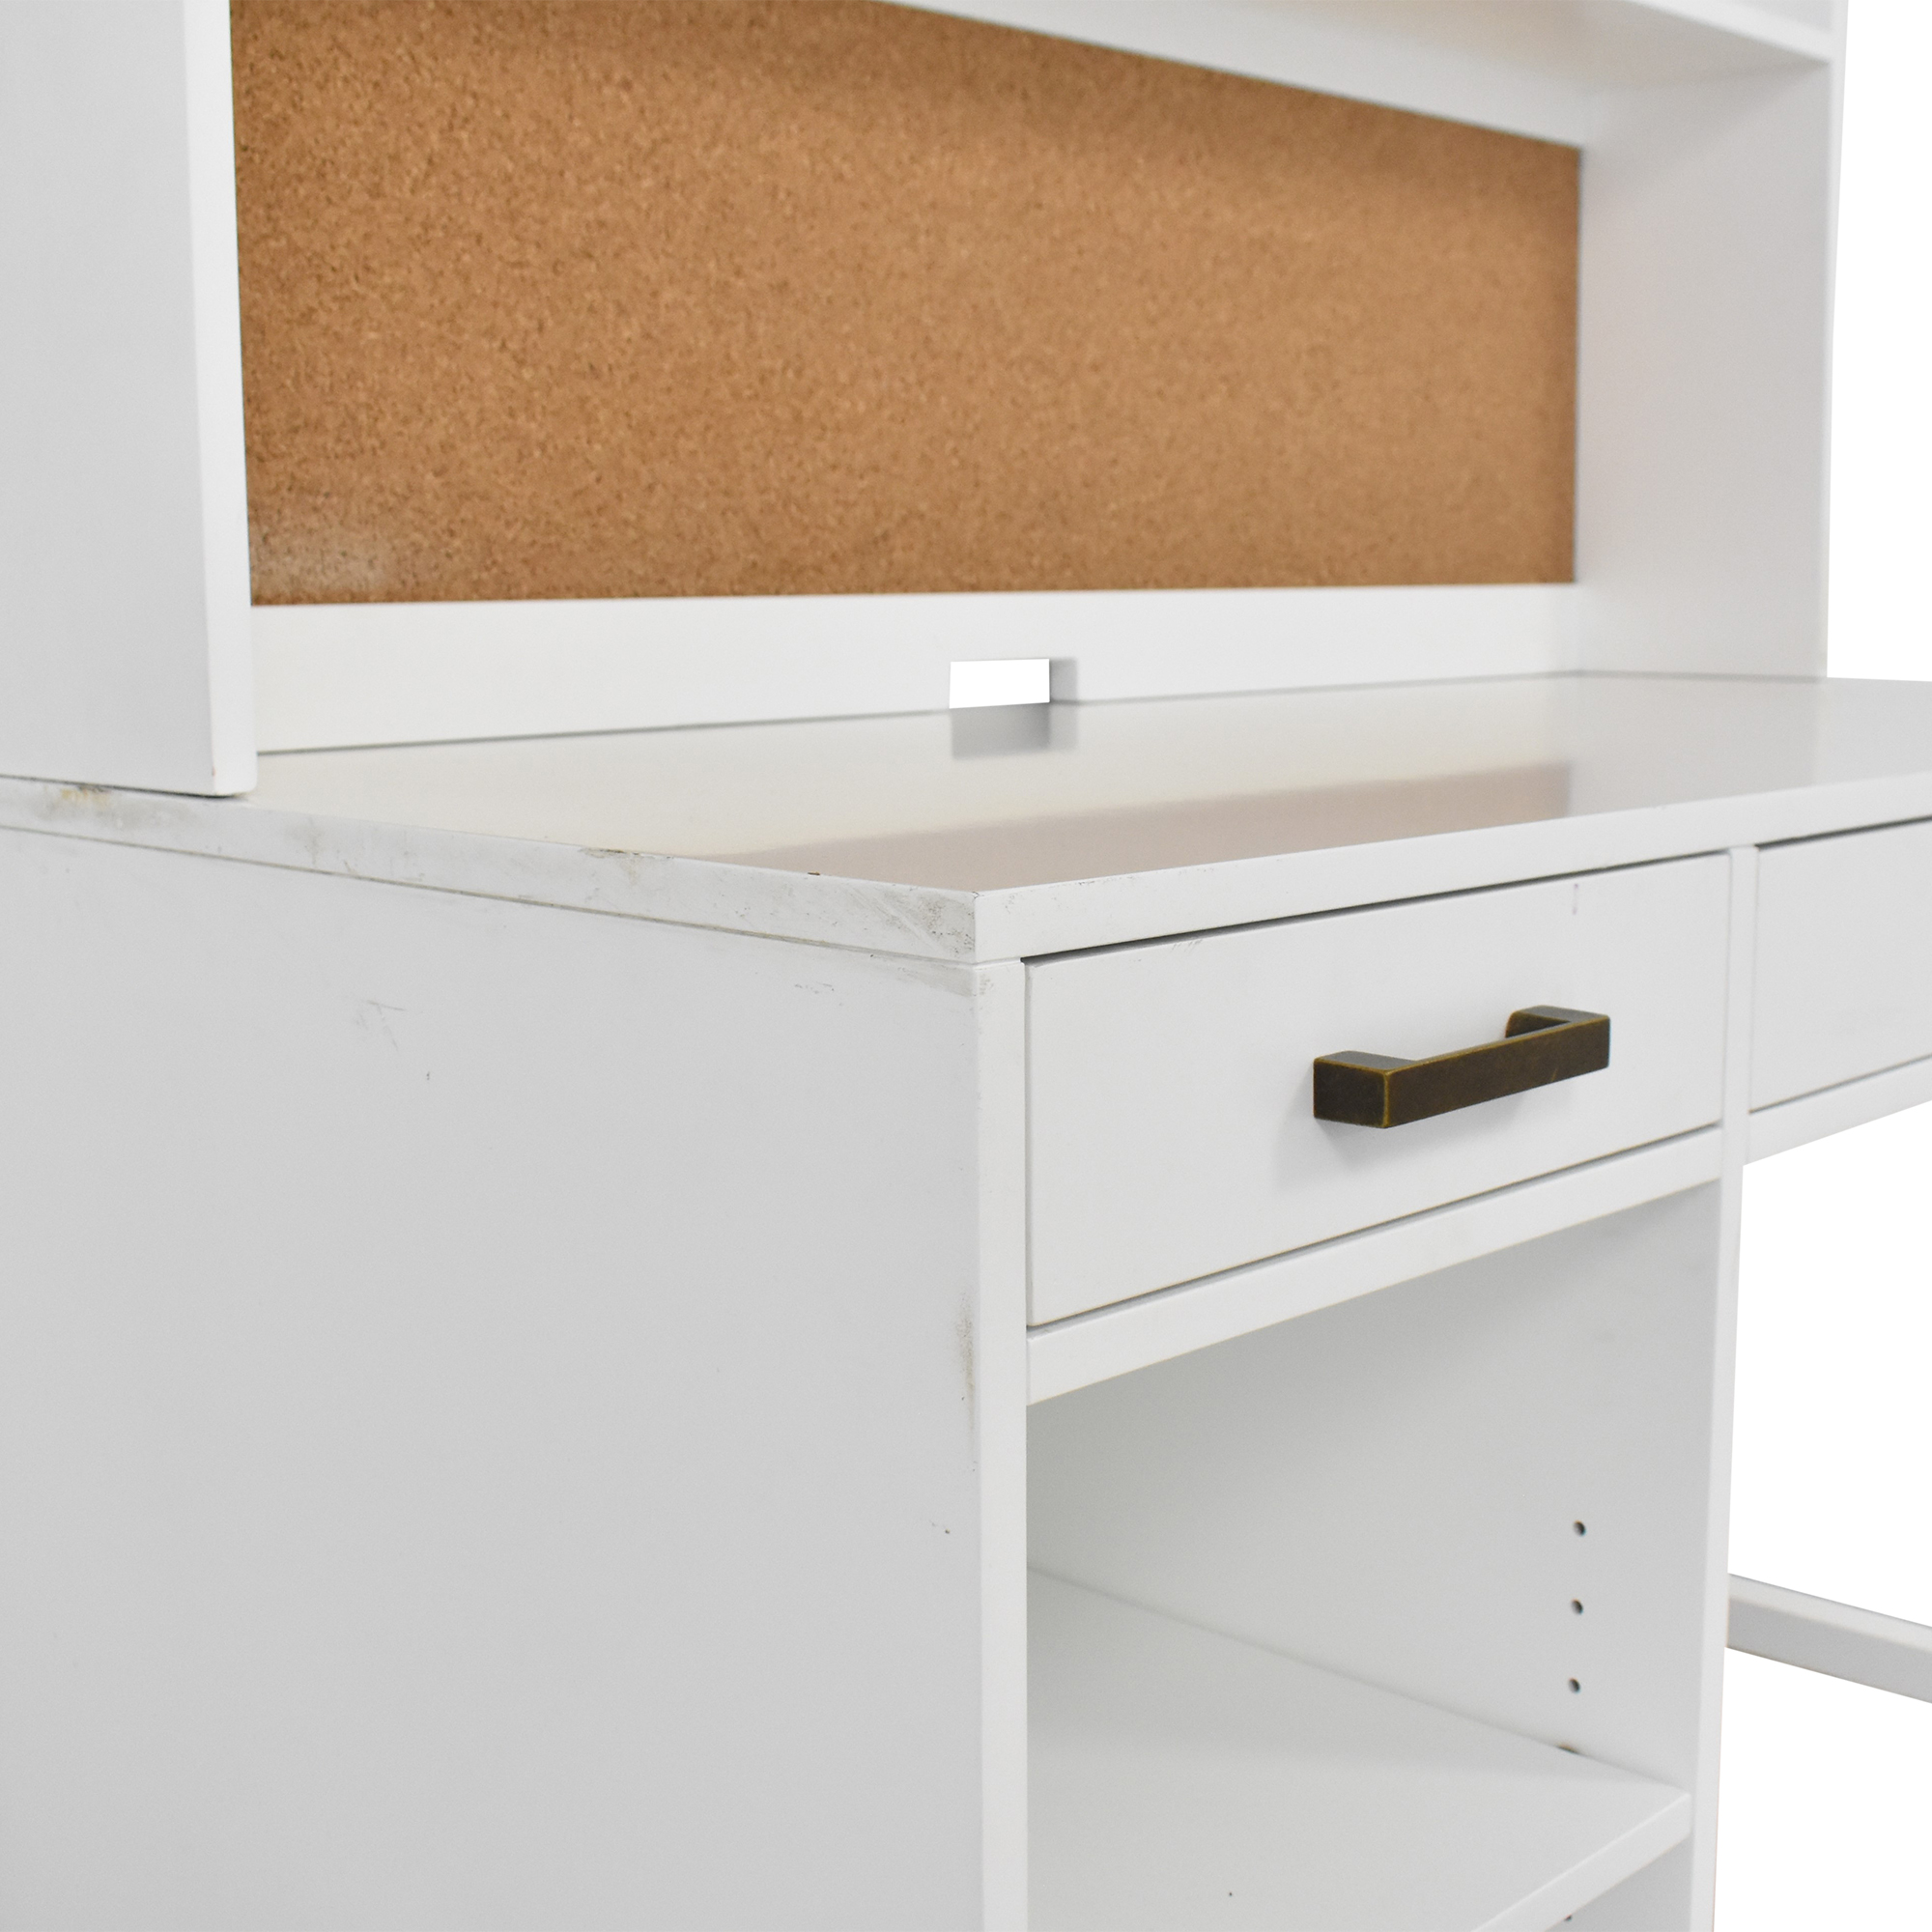 buy Land of Nod for Crate & Kids Parke Desk and Hutch Land of Nod Tables